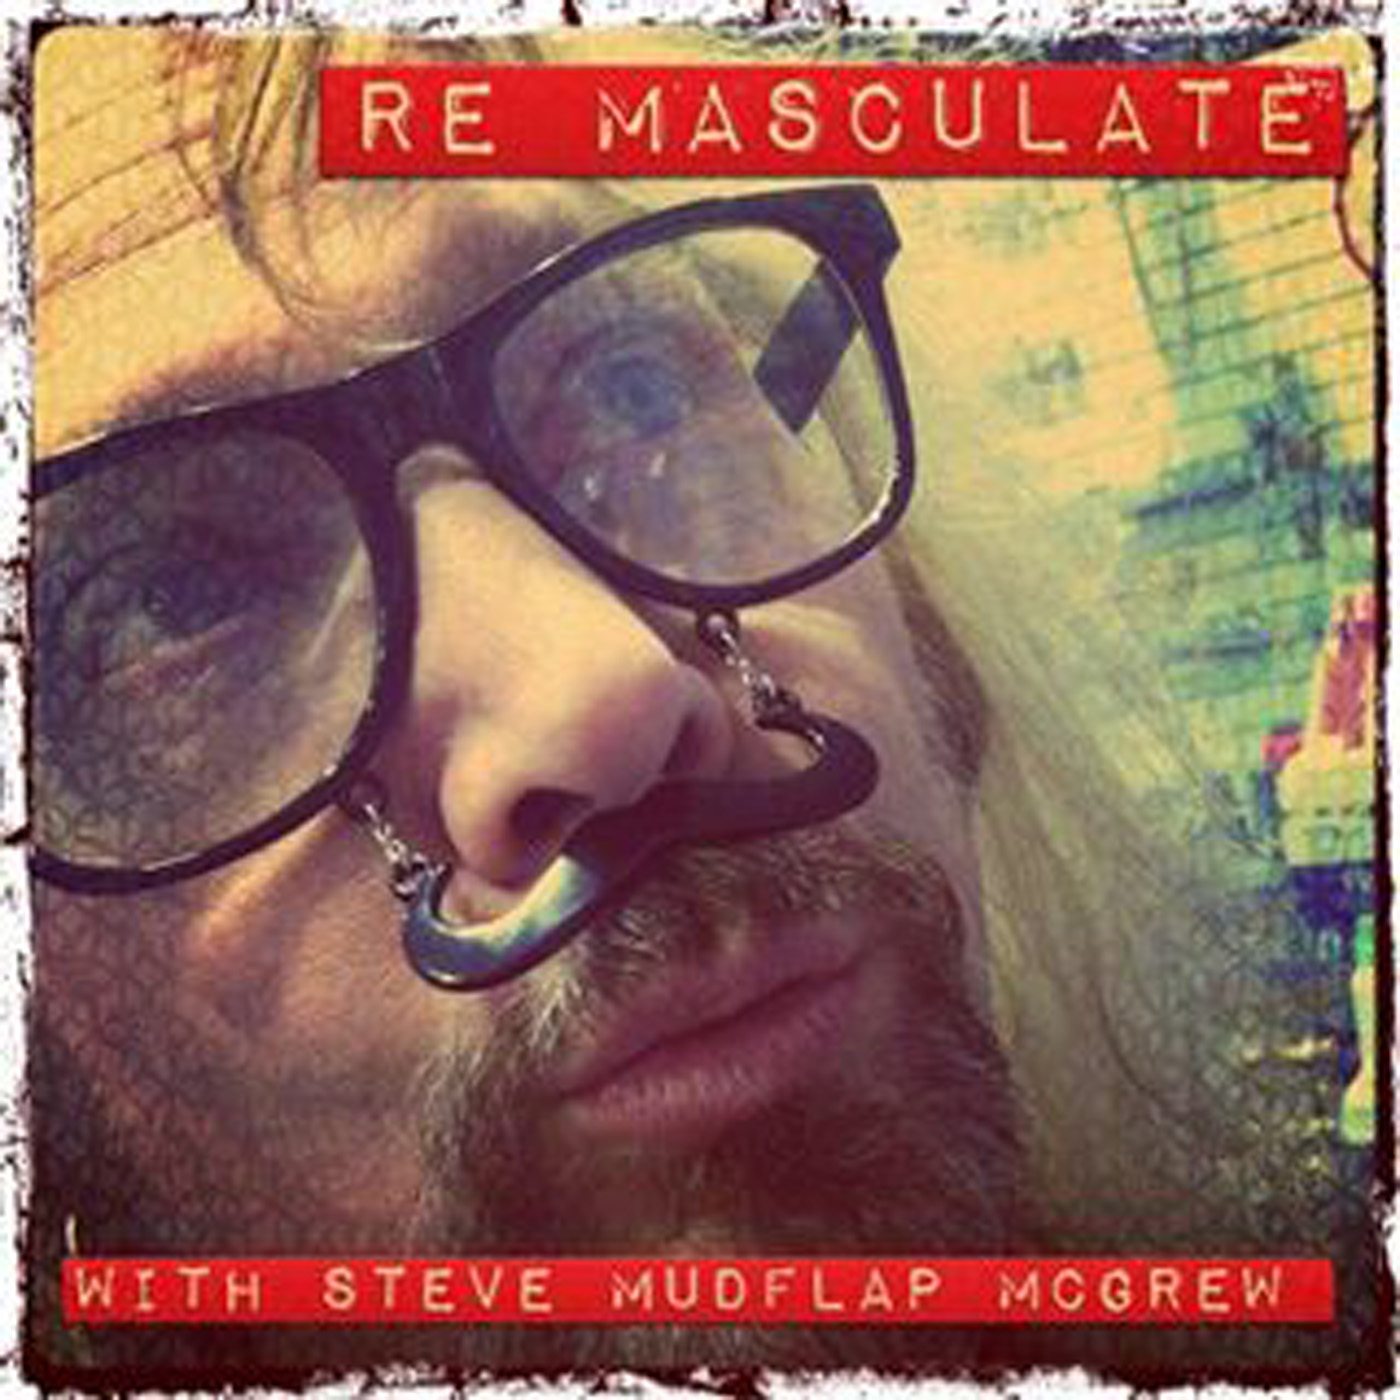 RE-MASCULATE with Steve Mudflap McGrew